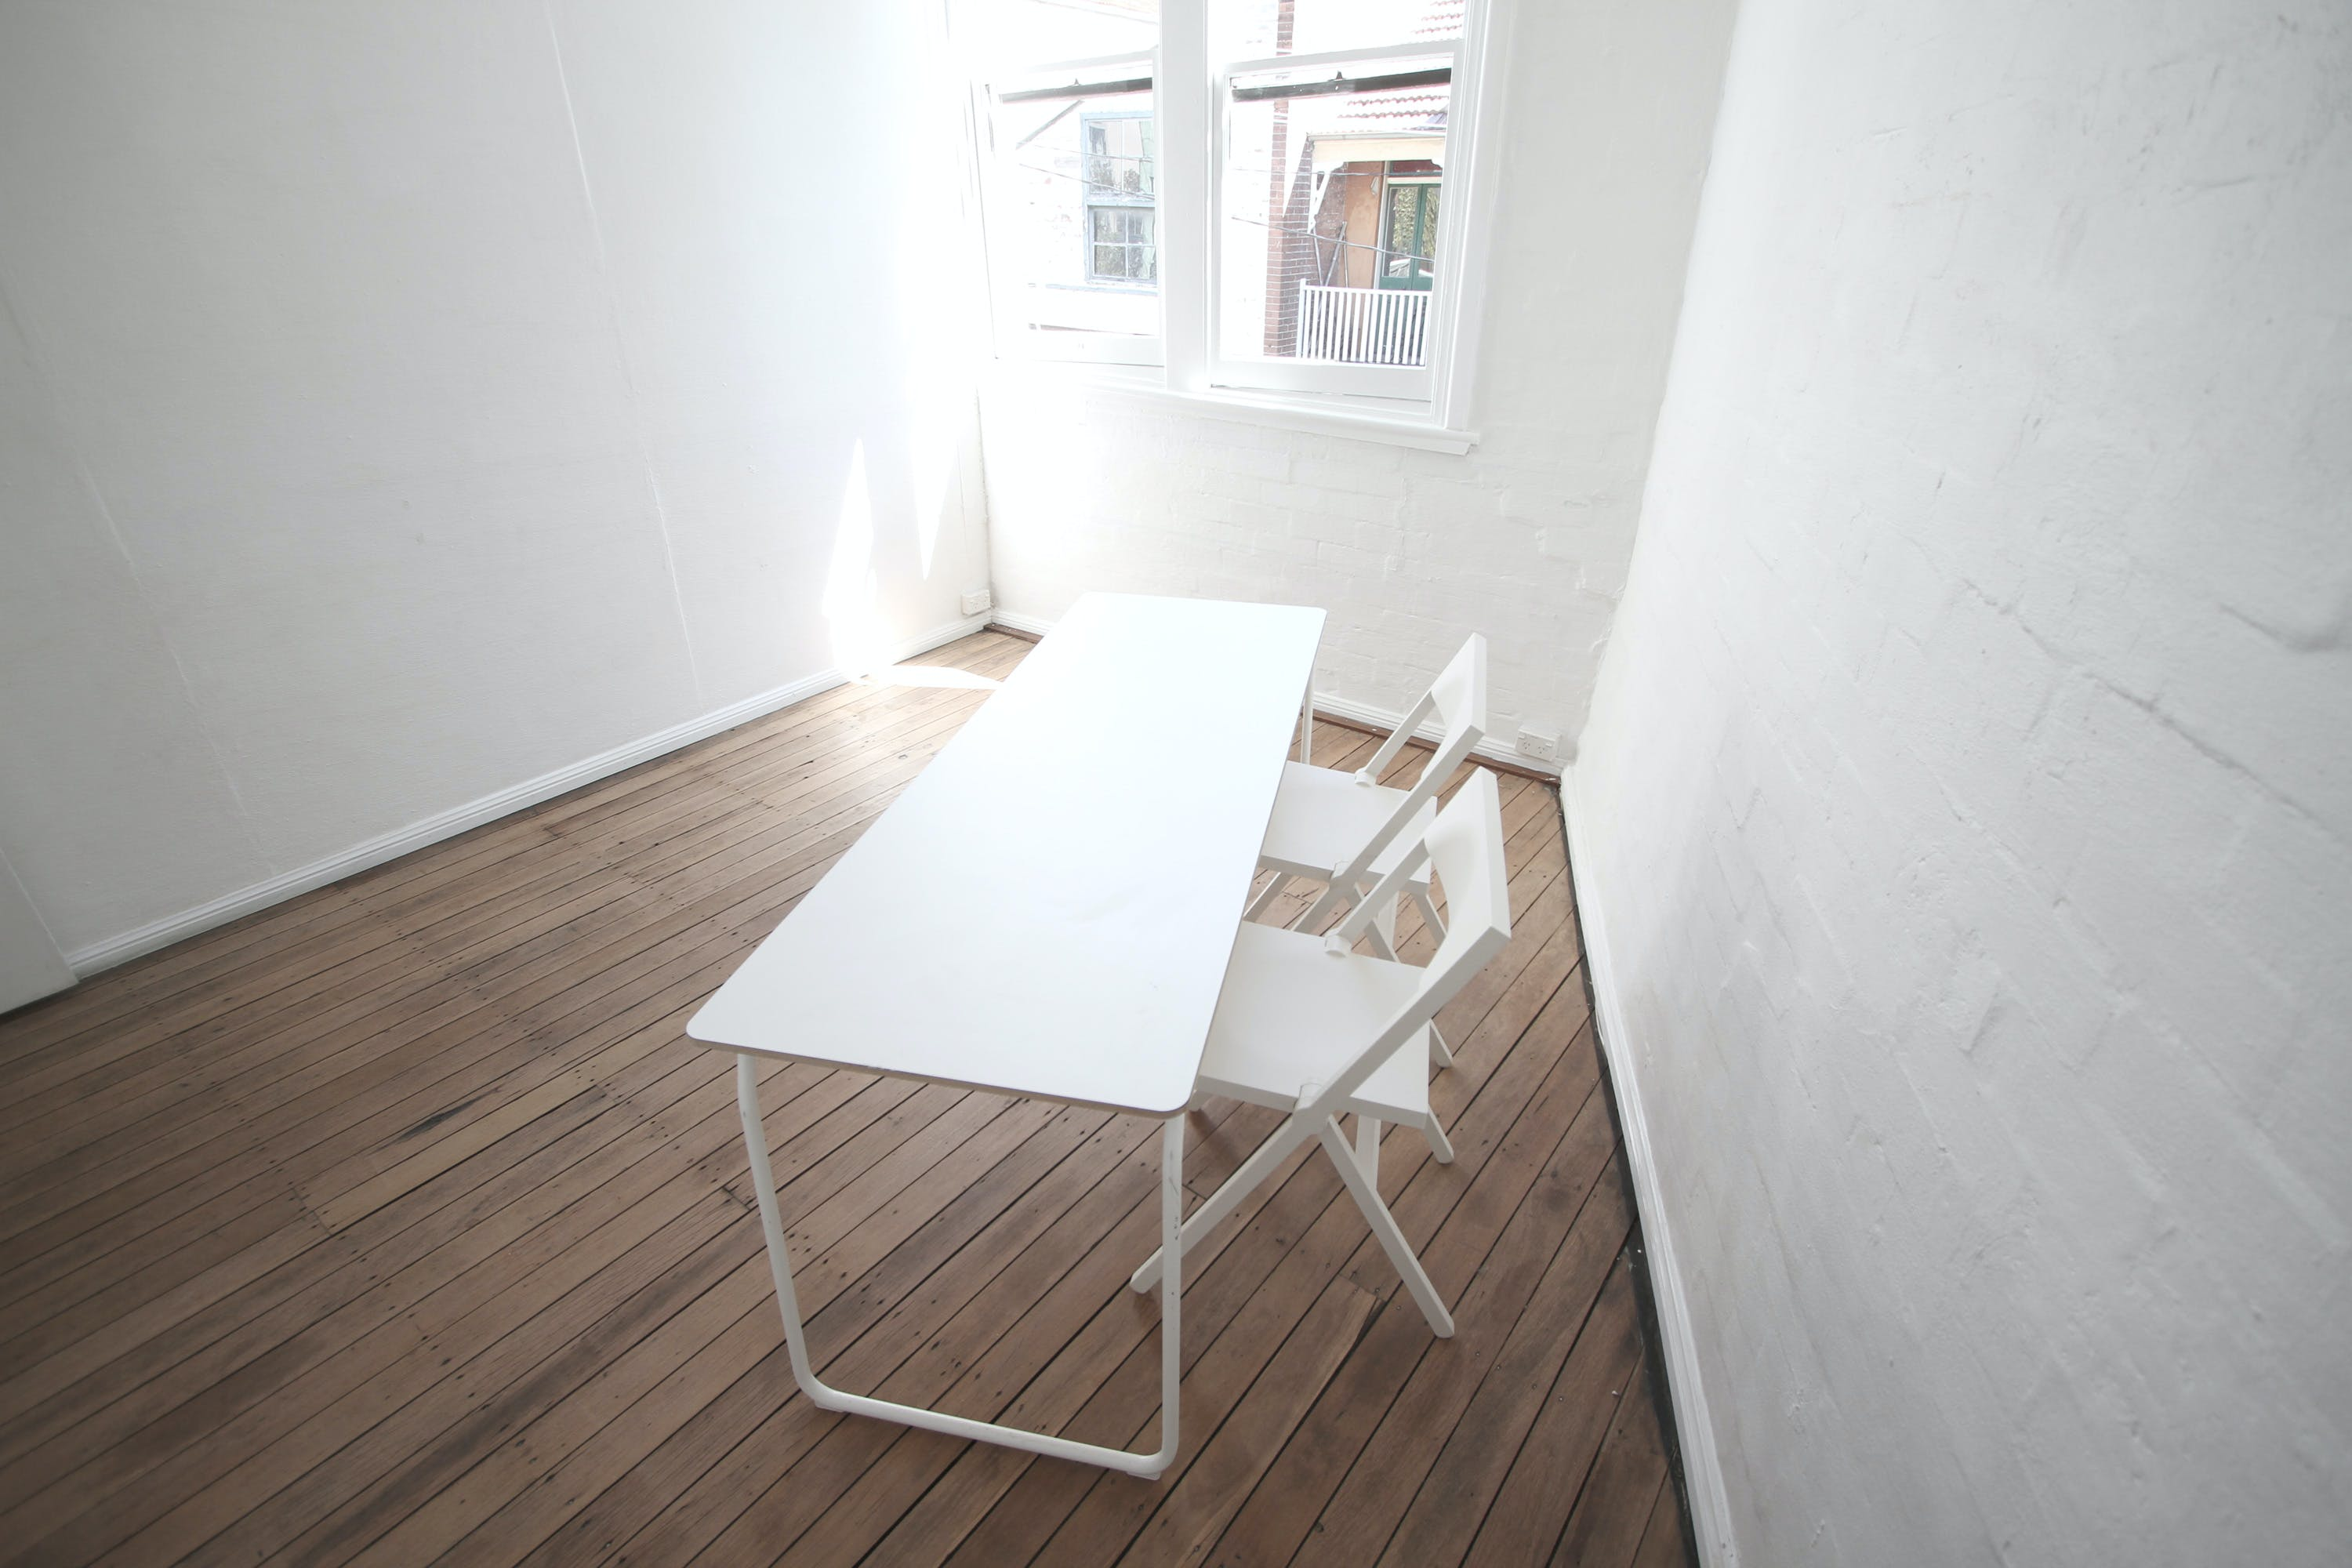 Comber Street Studios (Studio 5), meeting room at Comber Street Studios, image 1